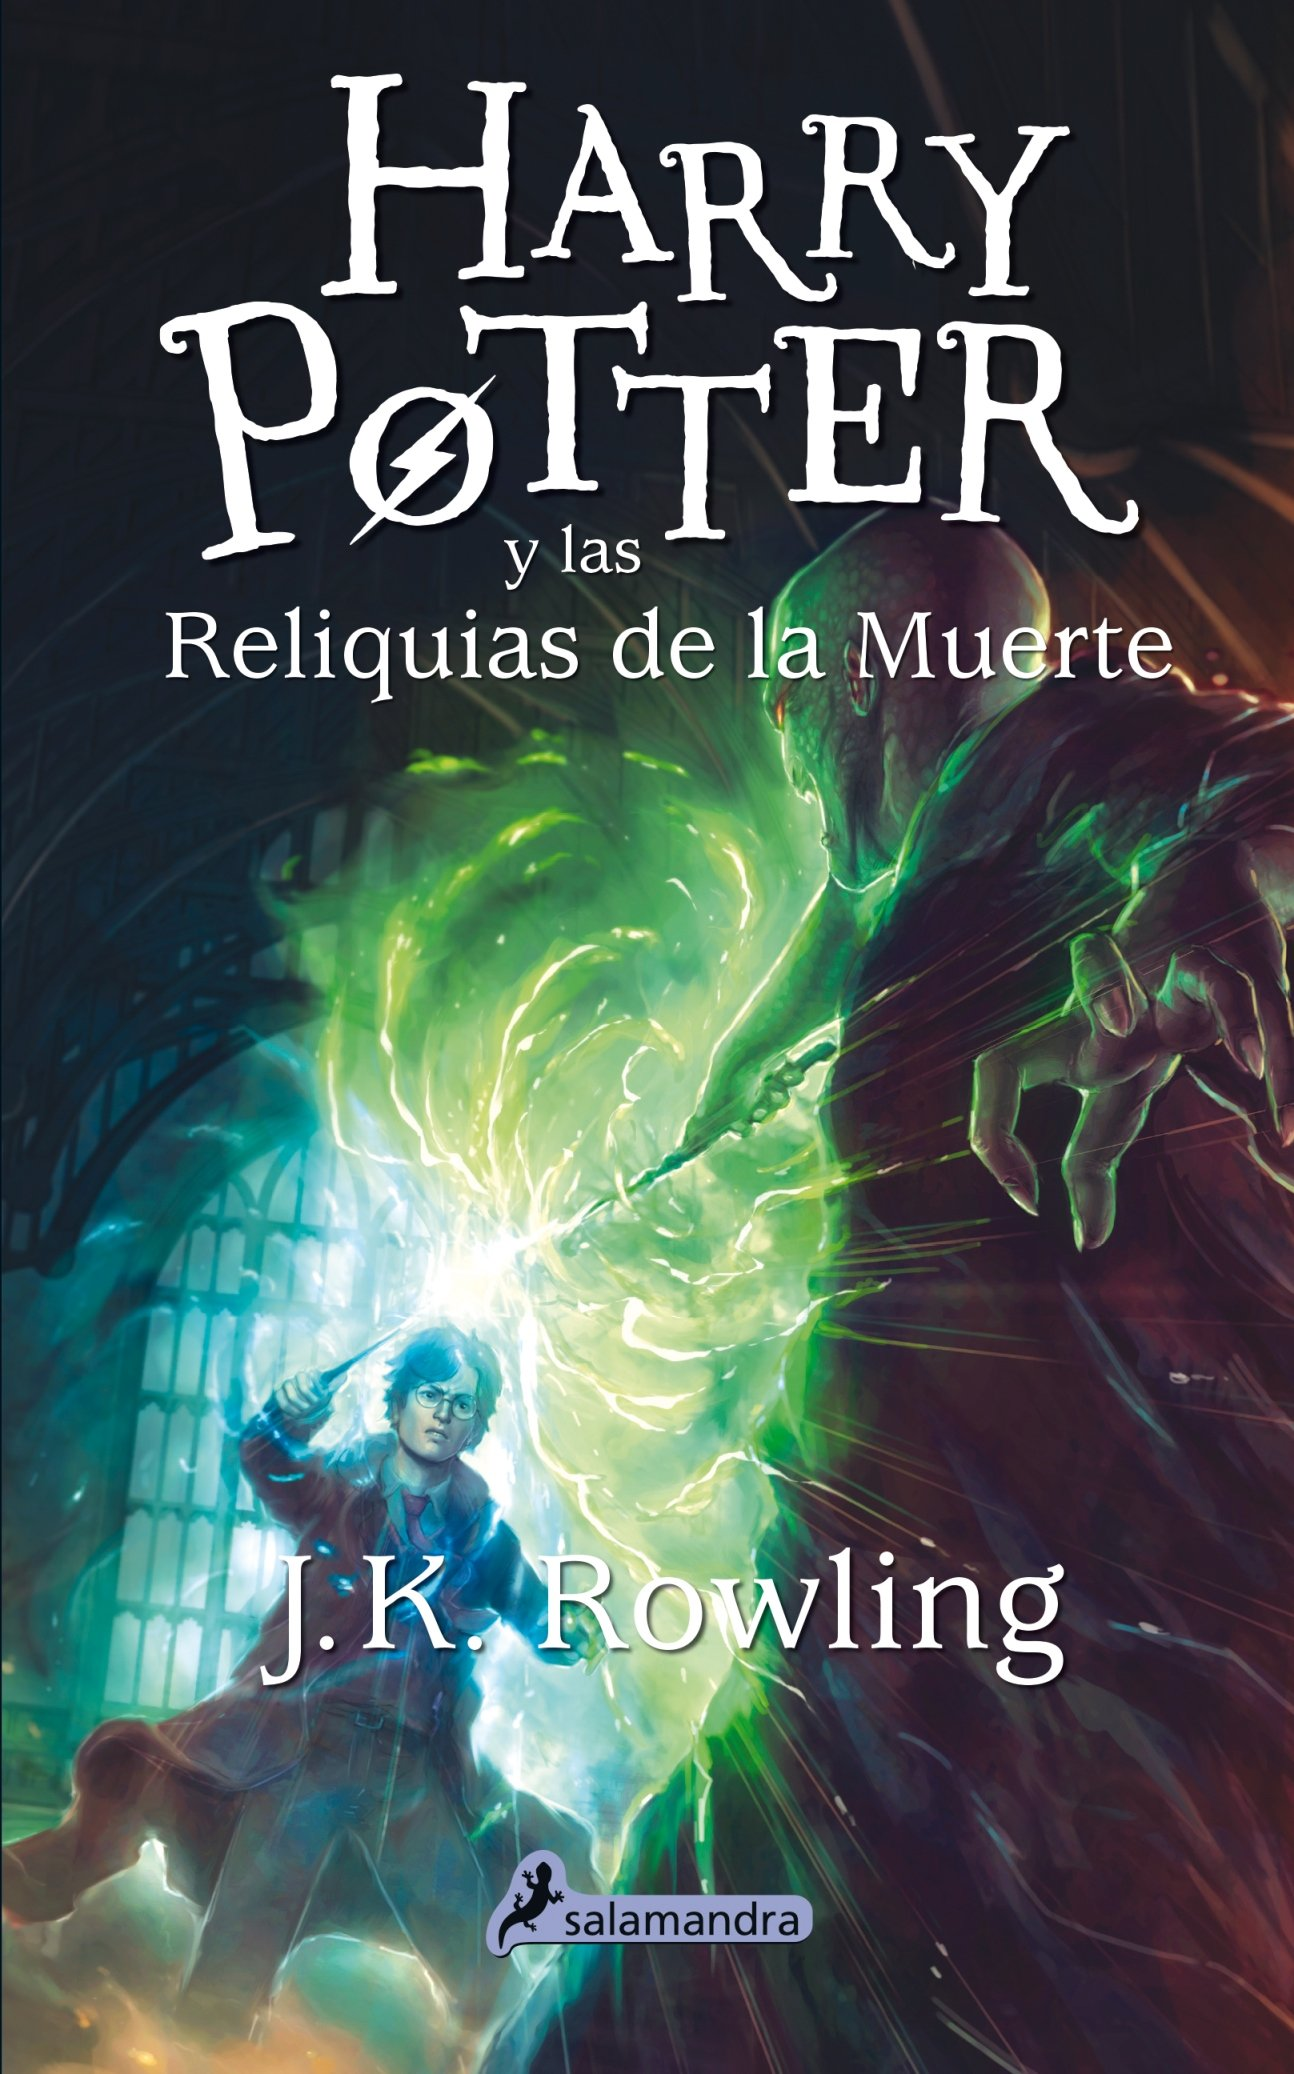 Harry Potter y las reliquias de la muerte (Harry 07) (Spanish Edition): J.  K. Rowling: 9788498387001: Amazon.com: Books